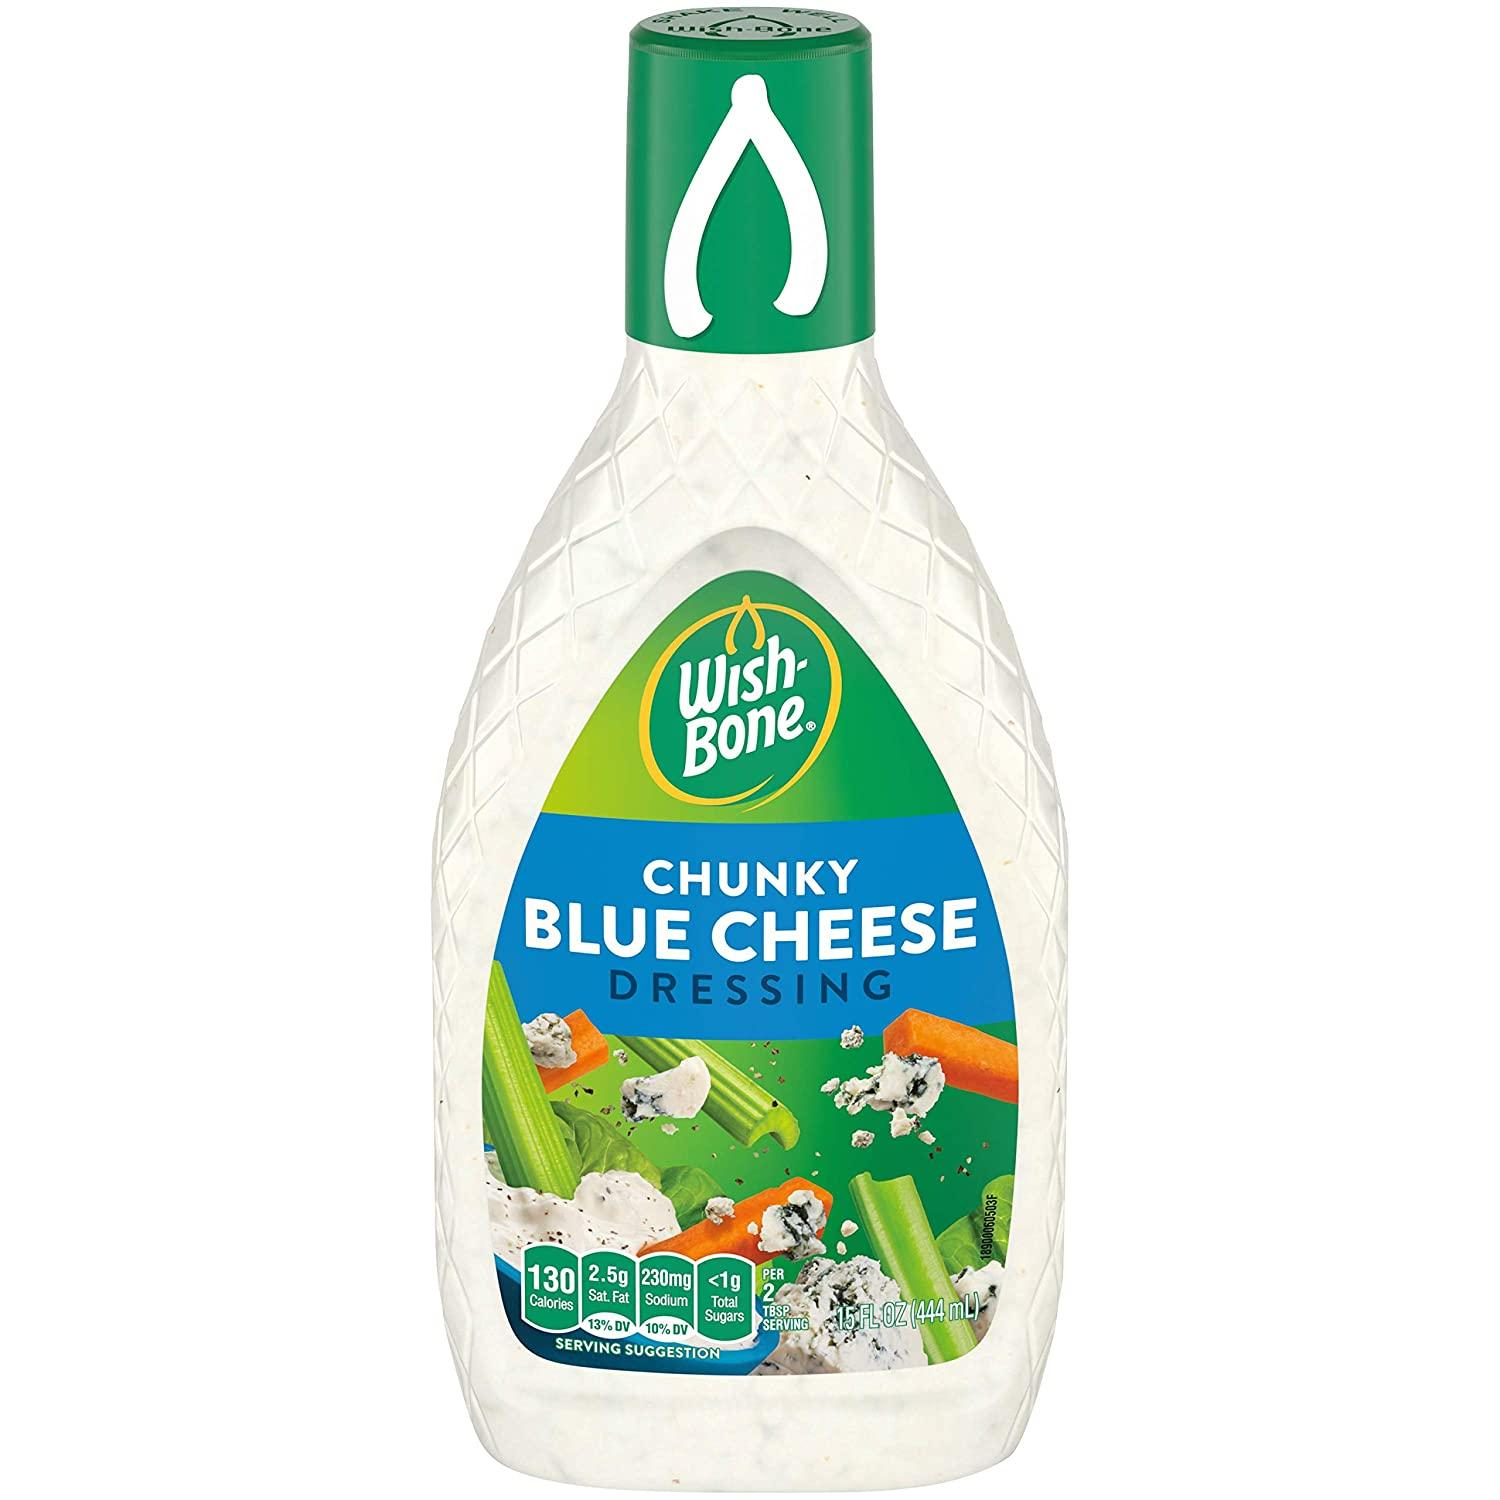 Wish-Bone Chunky Blue Cheese Salad Dressing for $1.18 Shipped